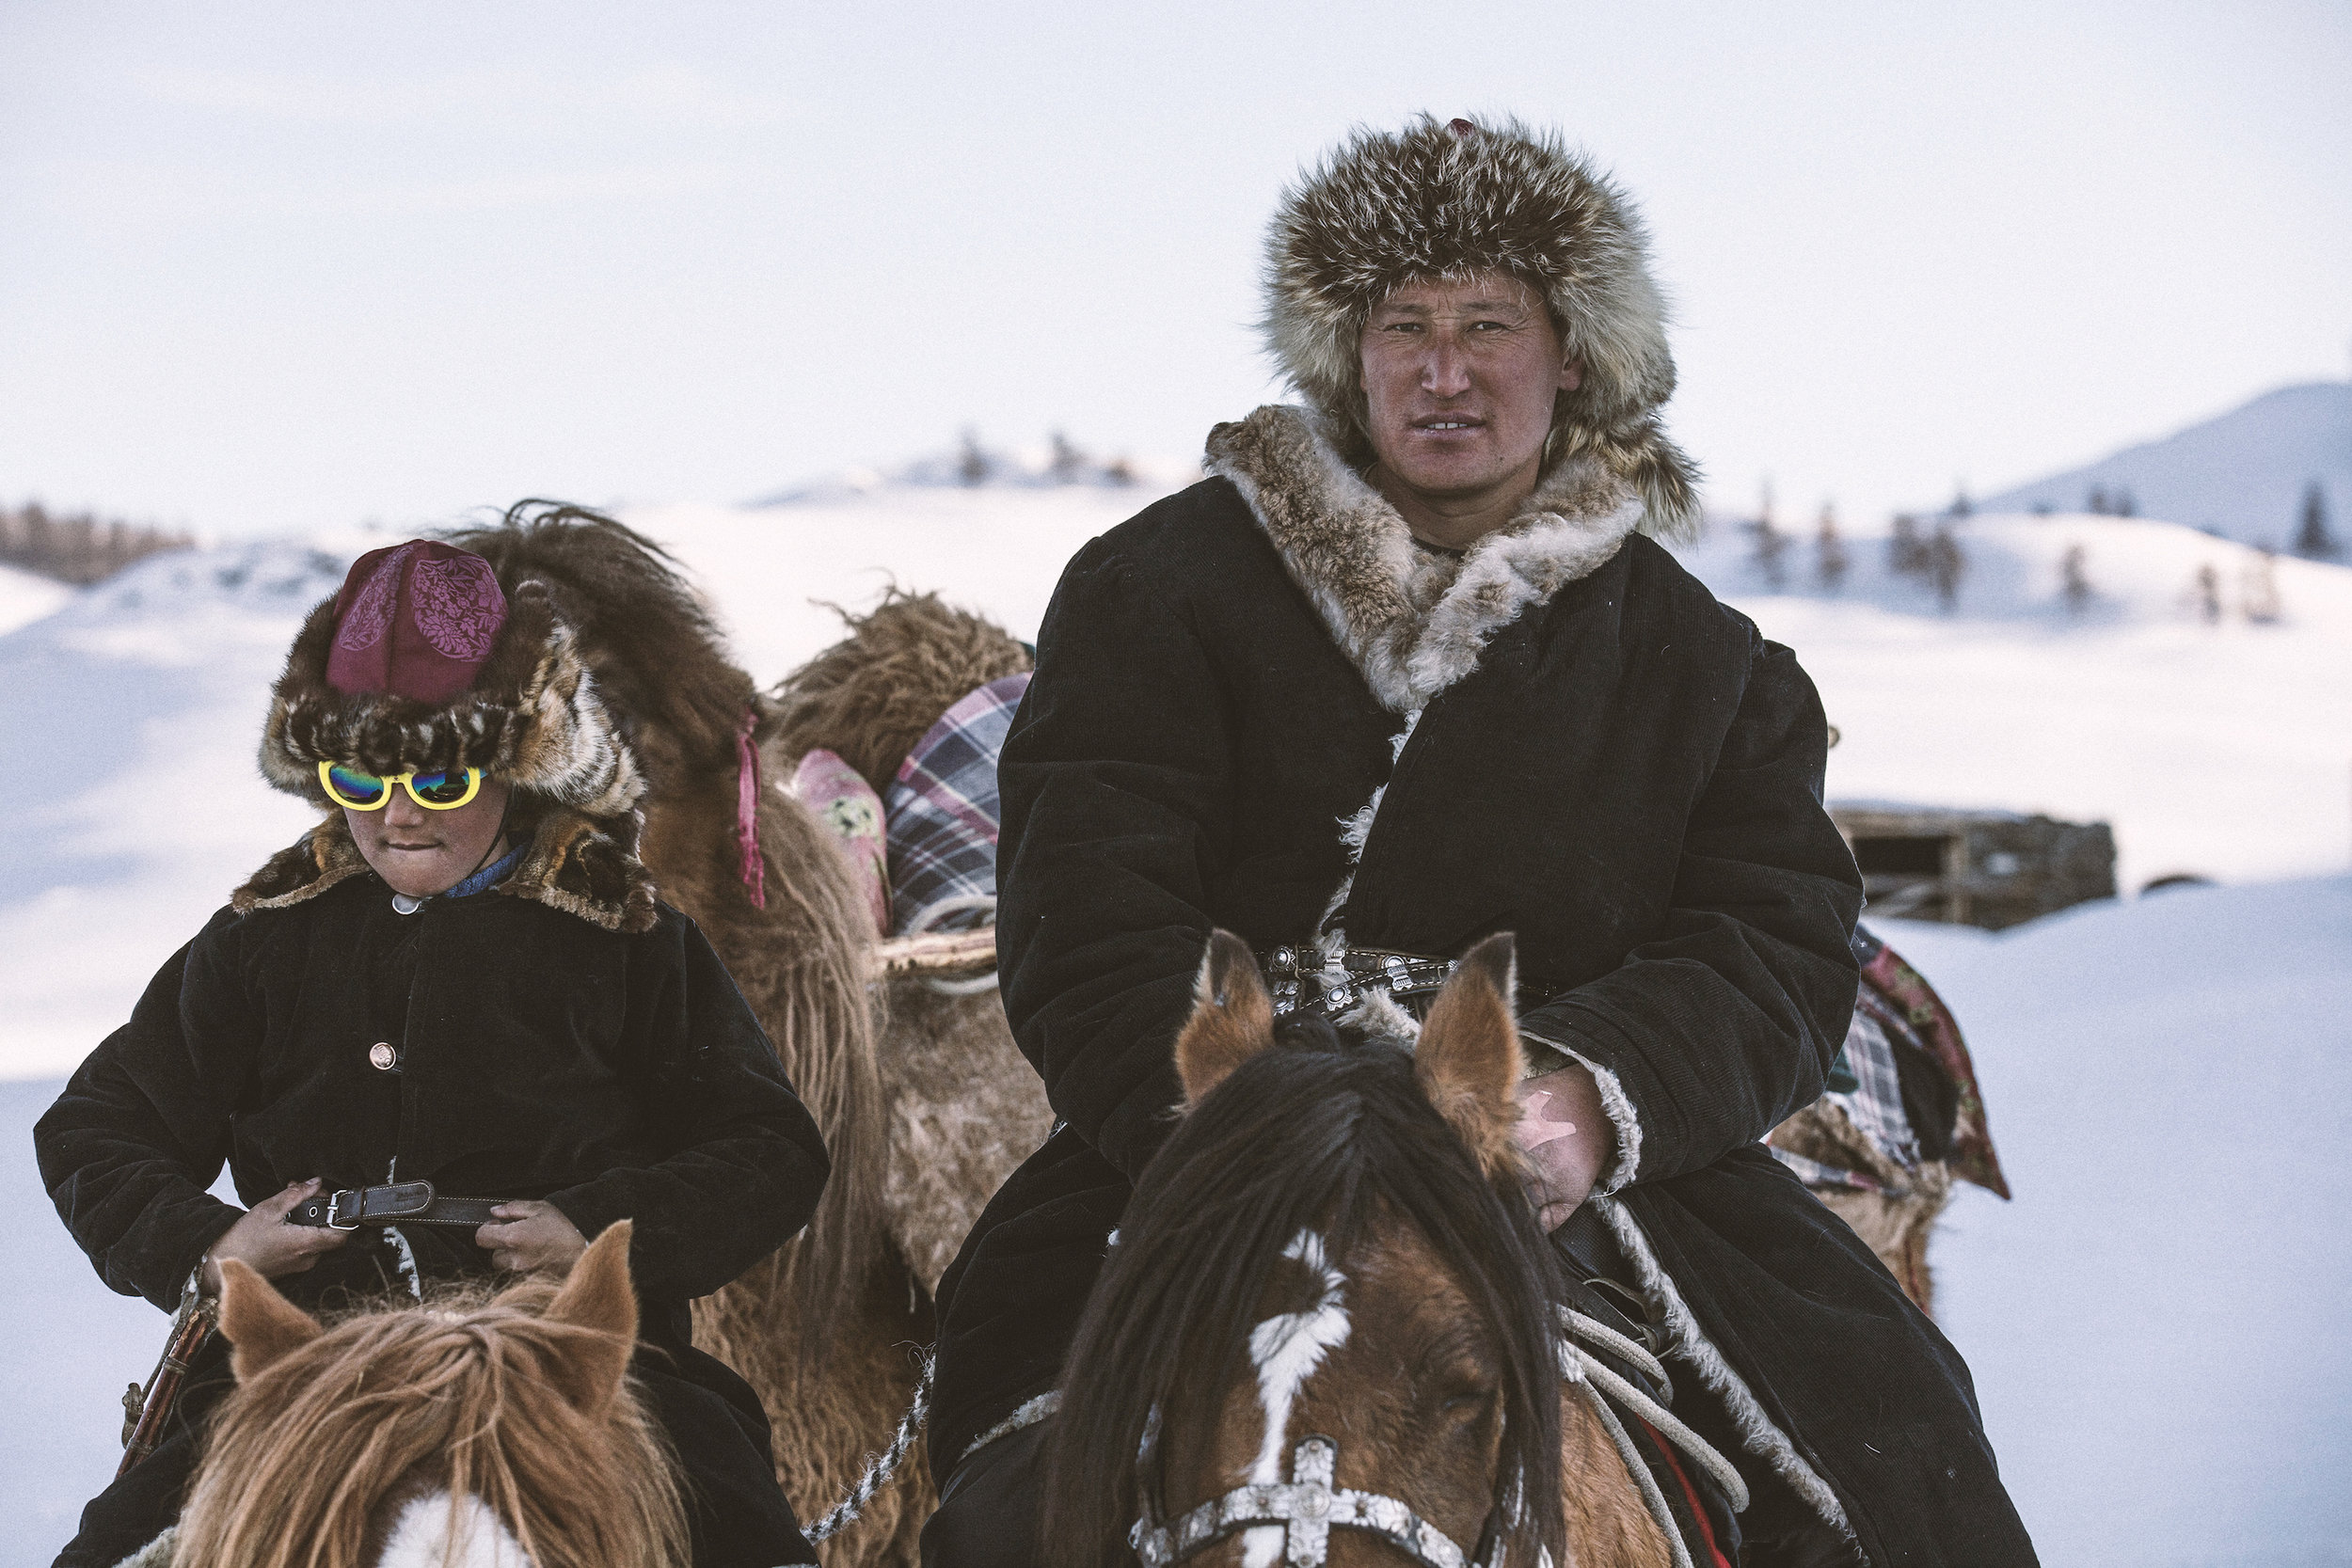 Janibek (L) with his father Auez on the winter migration, Mongolia Altai_BOY_NOMAD_aAron_Munson.jpg